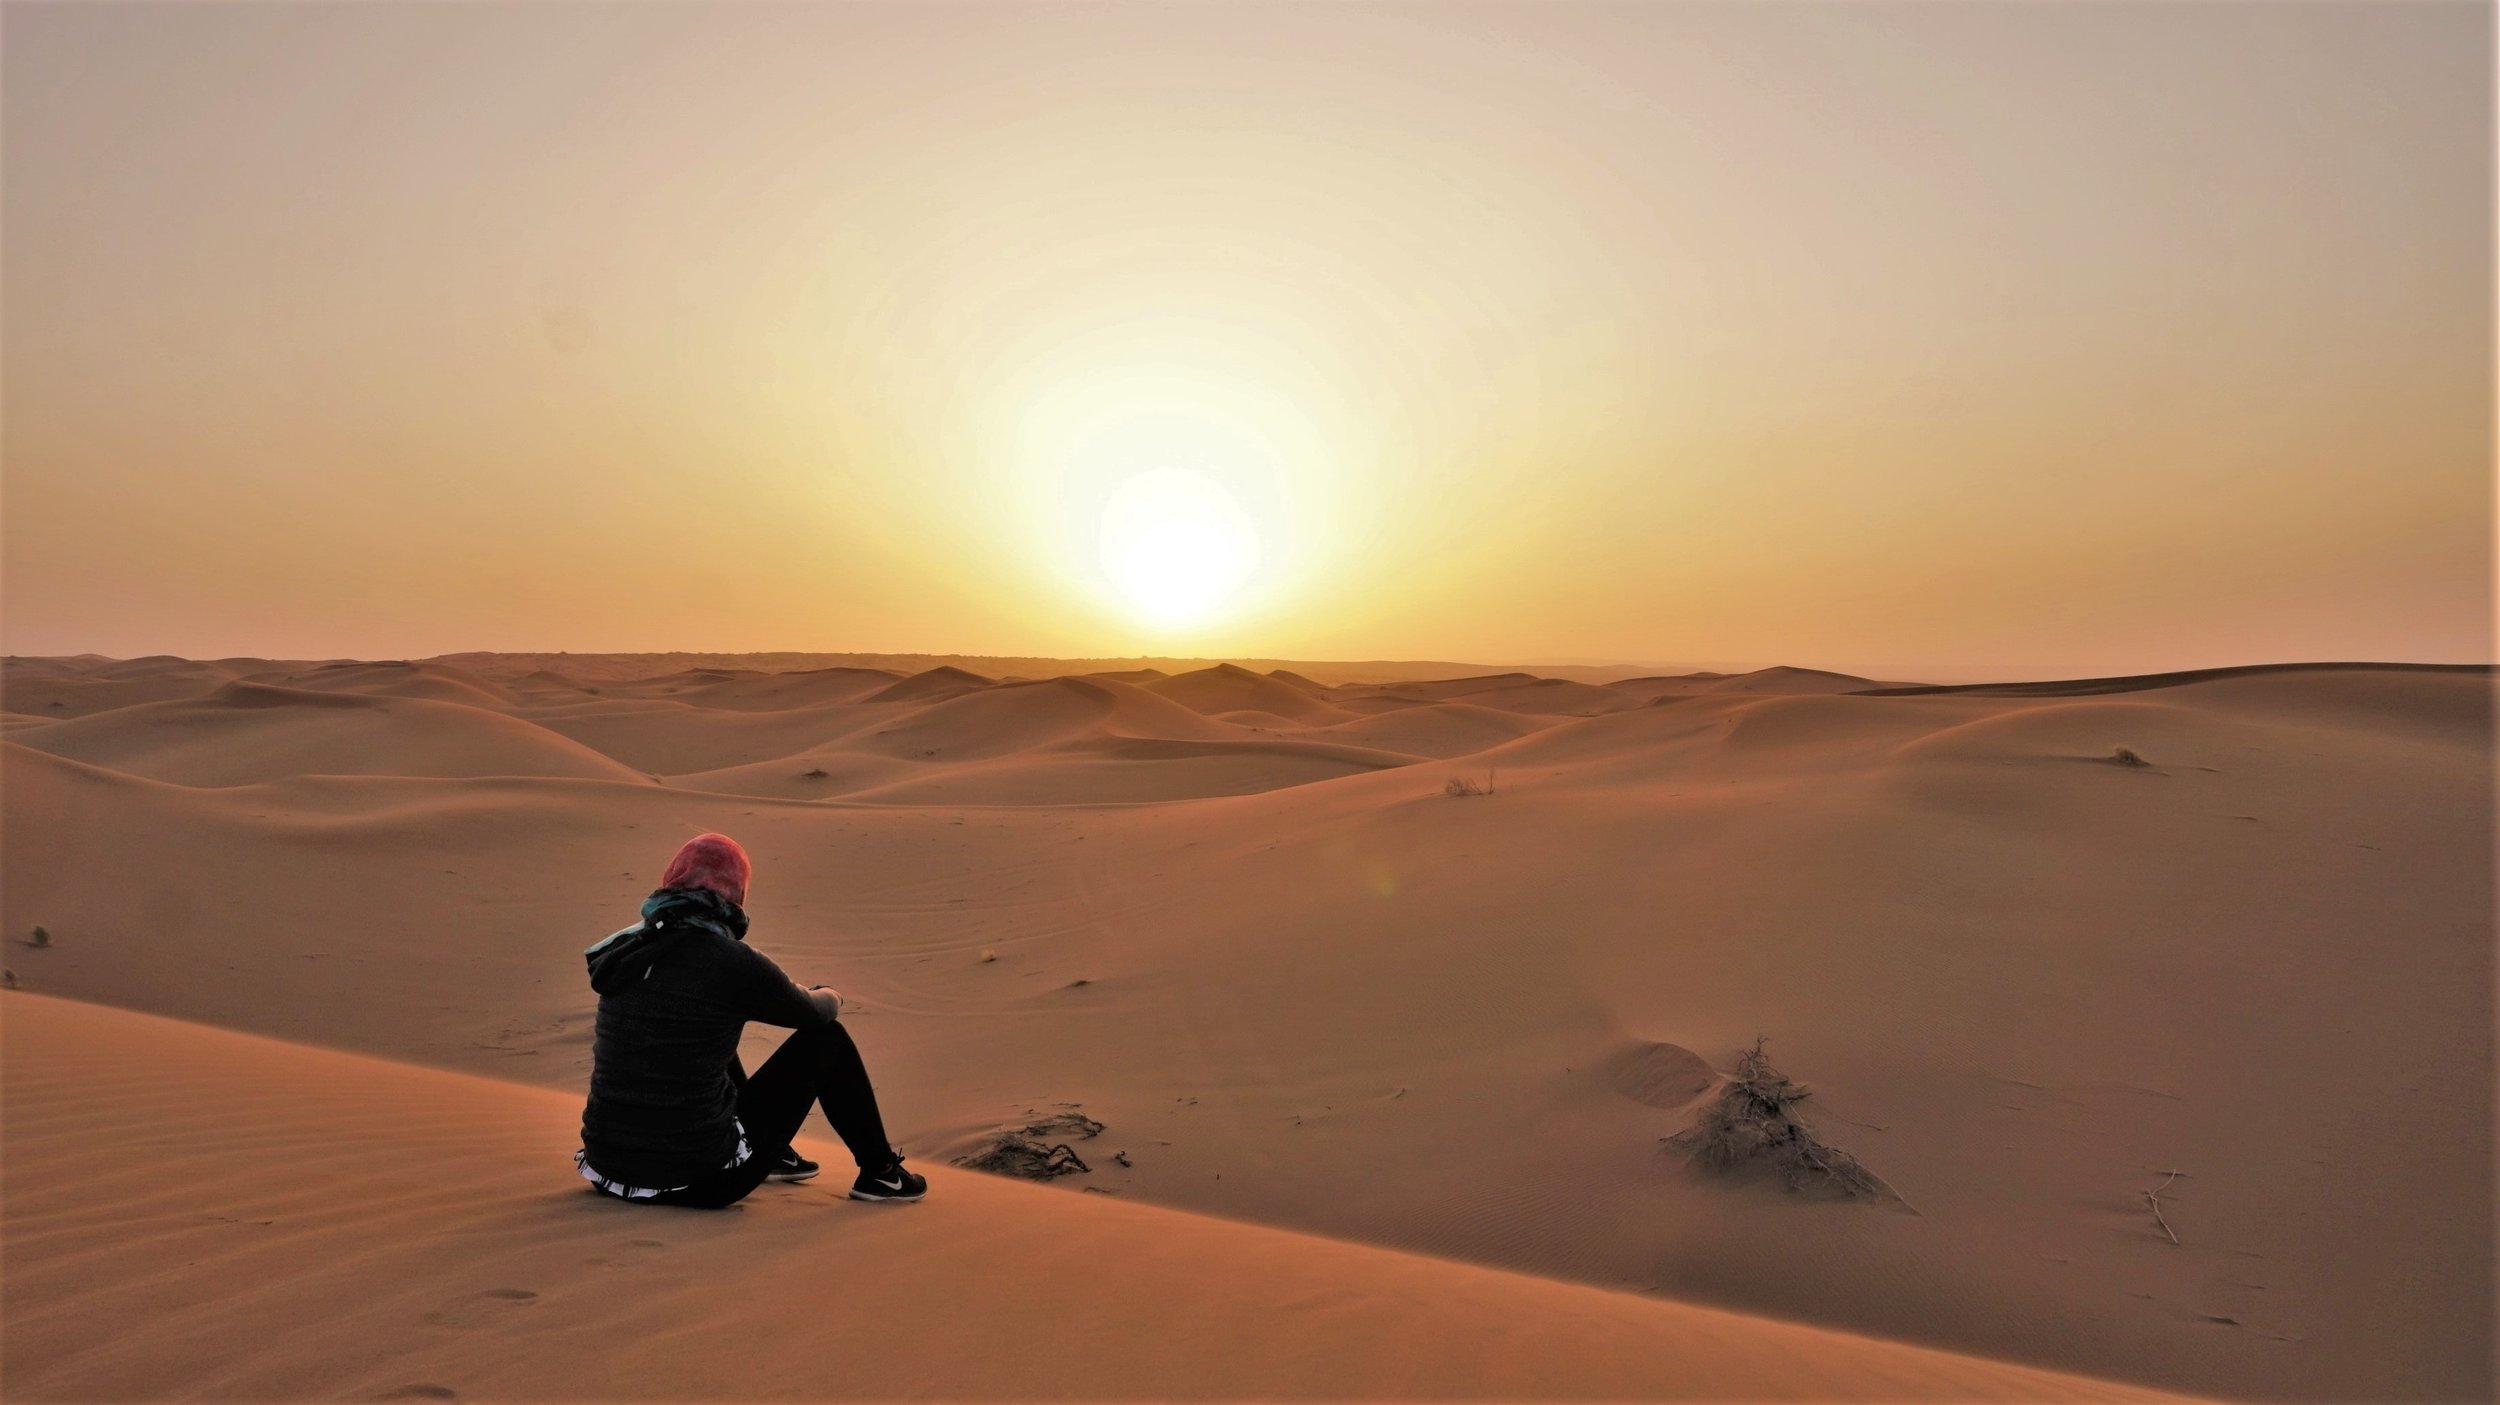 sunset in the desert iran-min.jpg